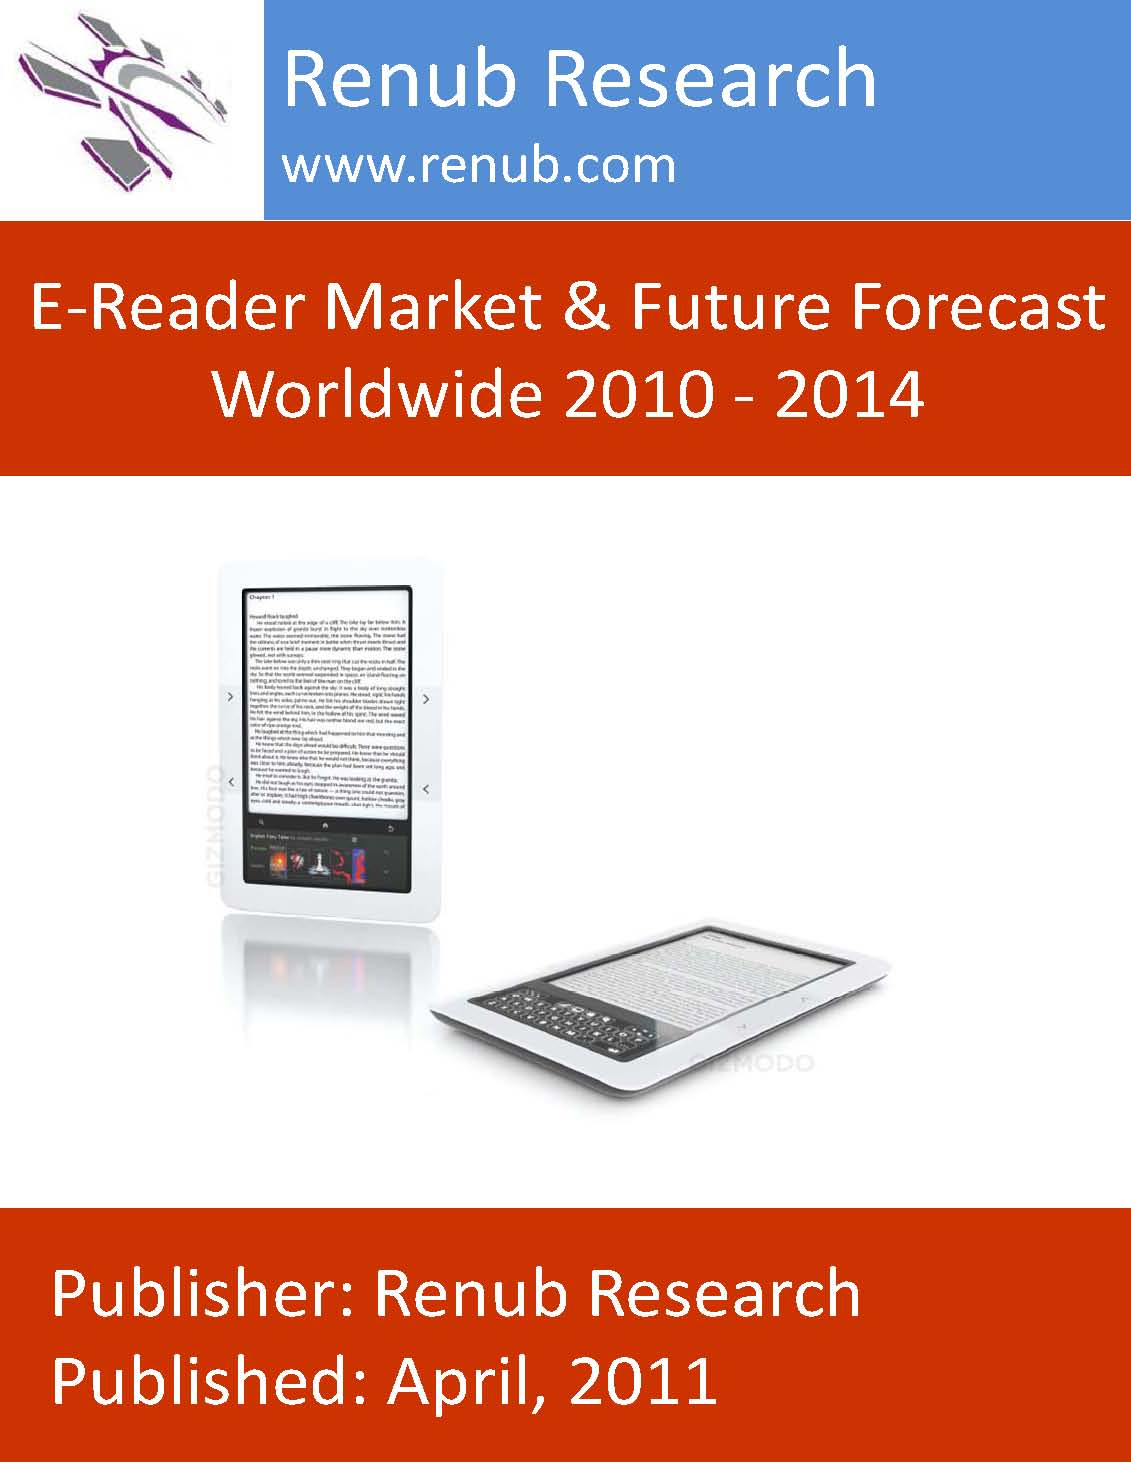 E-Reader Market & Future Forecast Worldwide 2010 - 2014